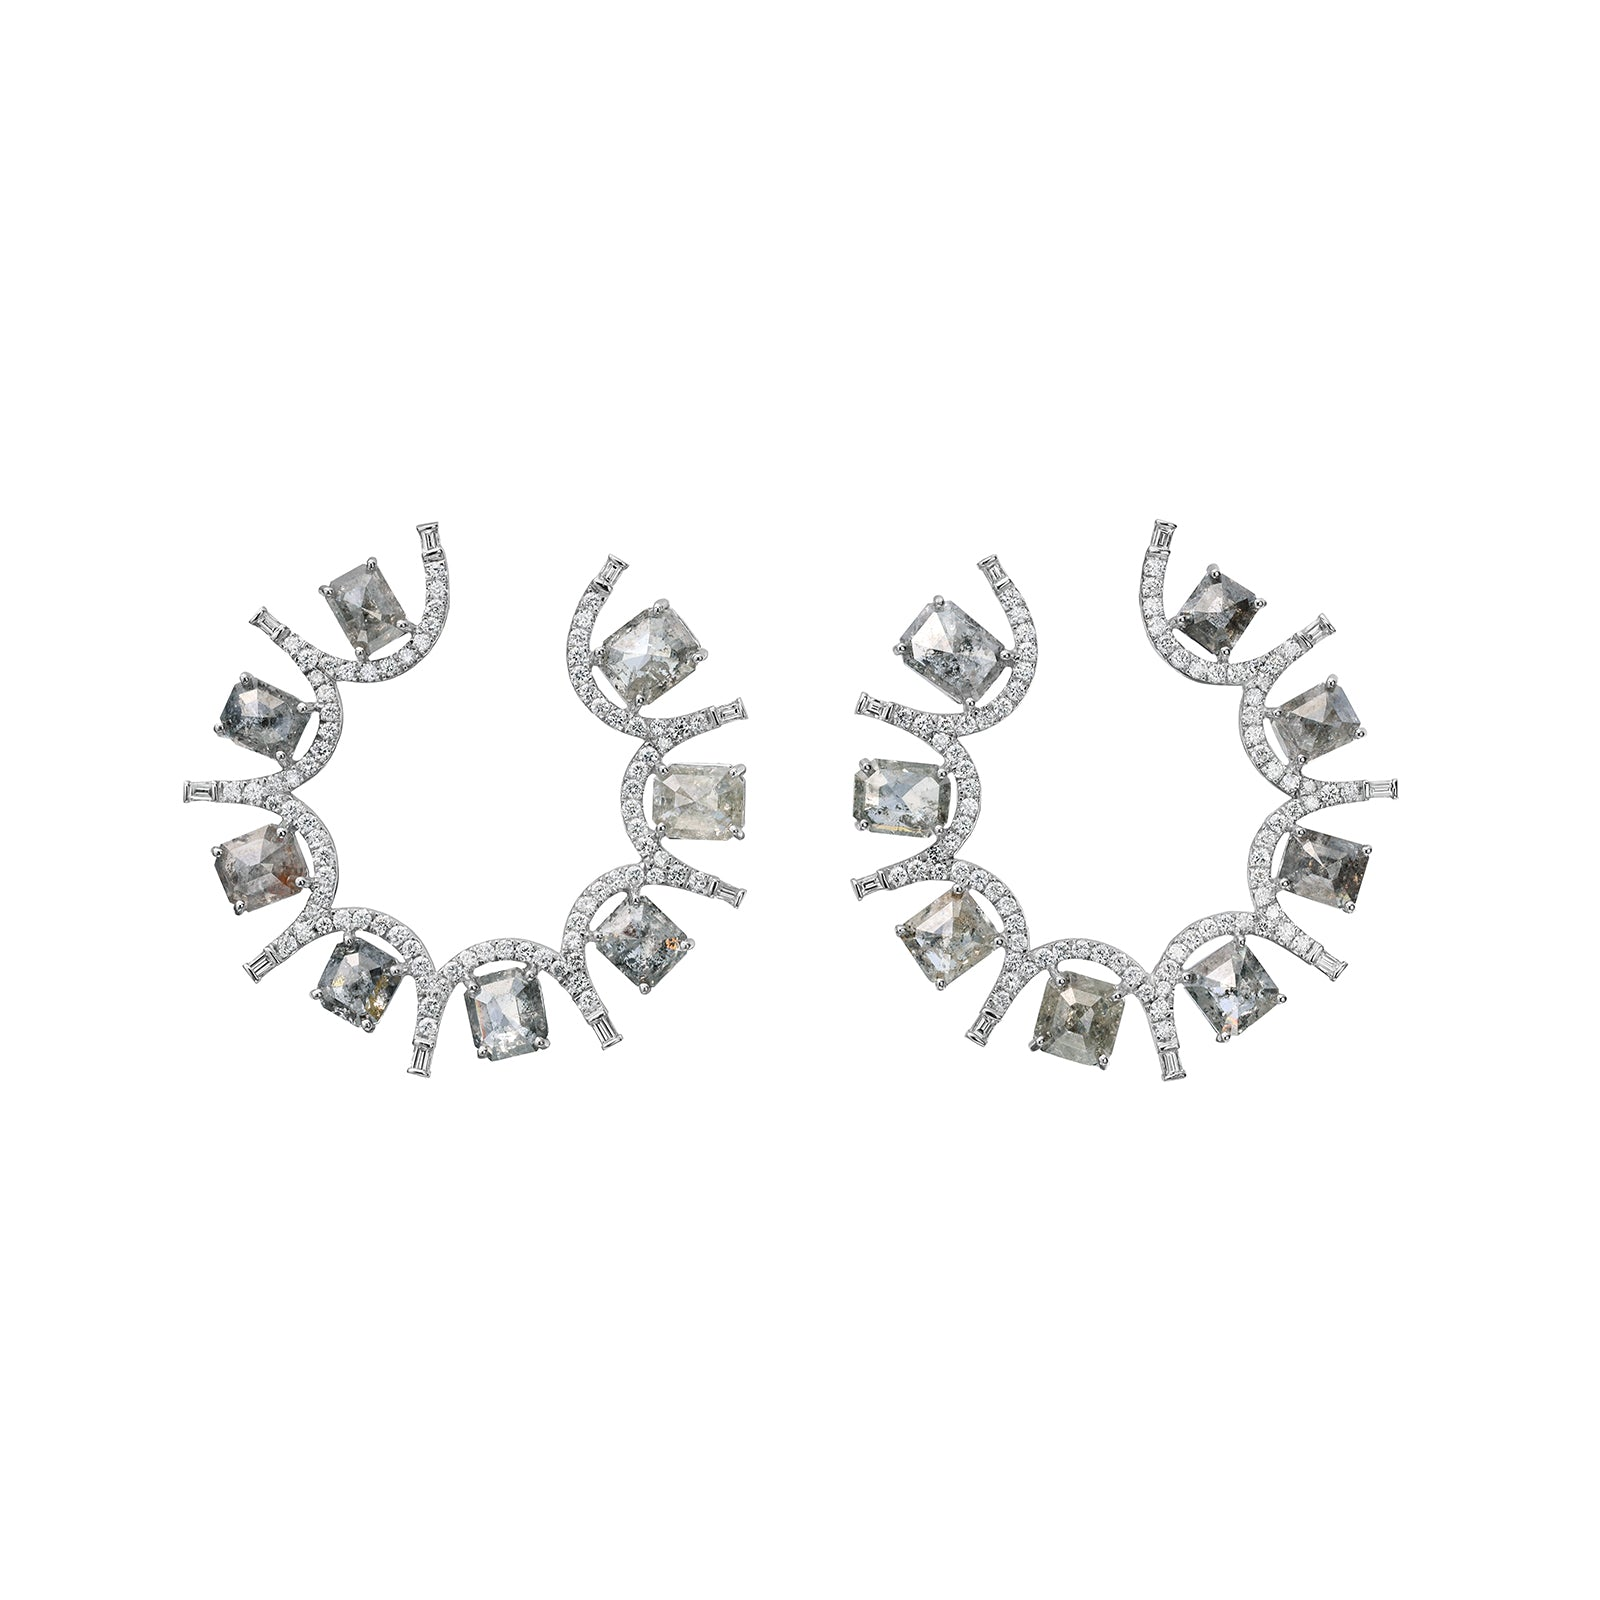 Nina Runsdorf Clair De Lune Grey Rough Baguette Diamond Sideways Hoops - Earrings - Broken English Jewelry